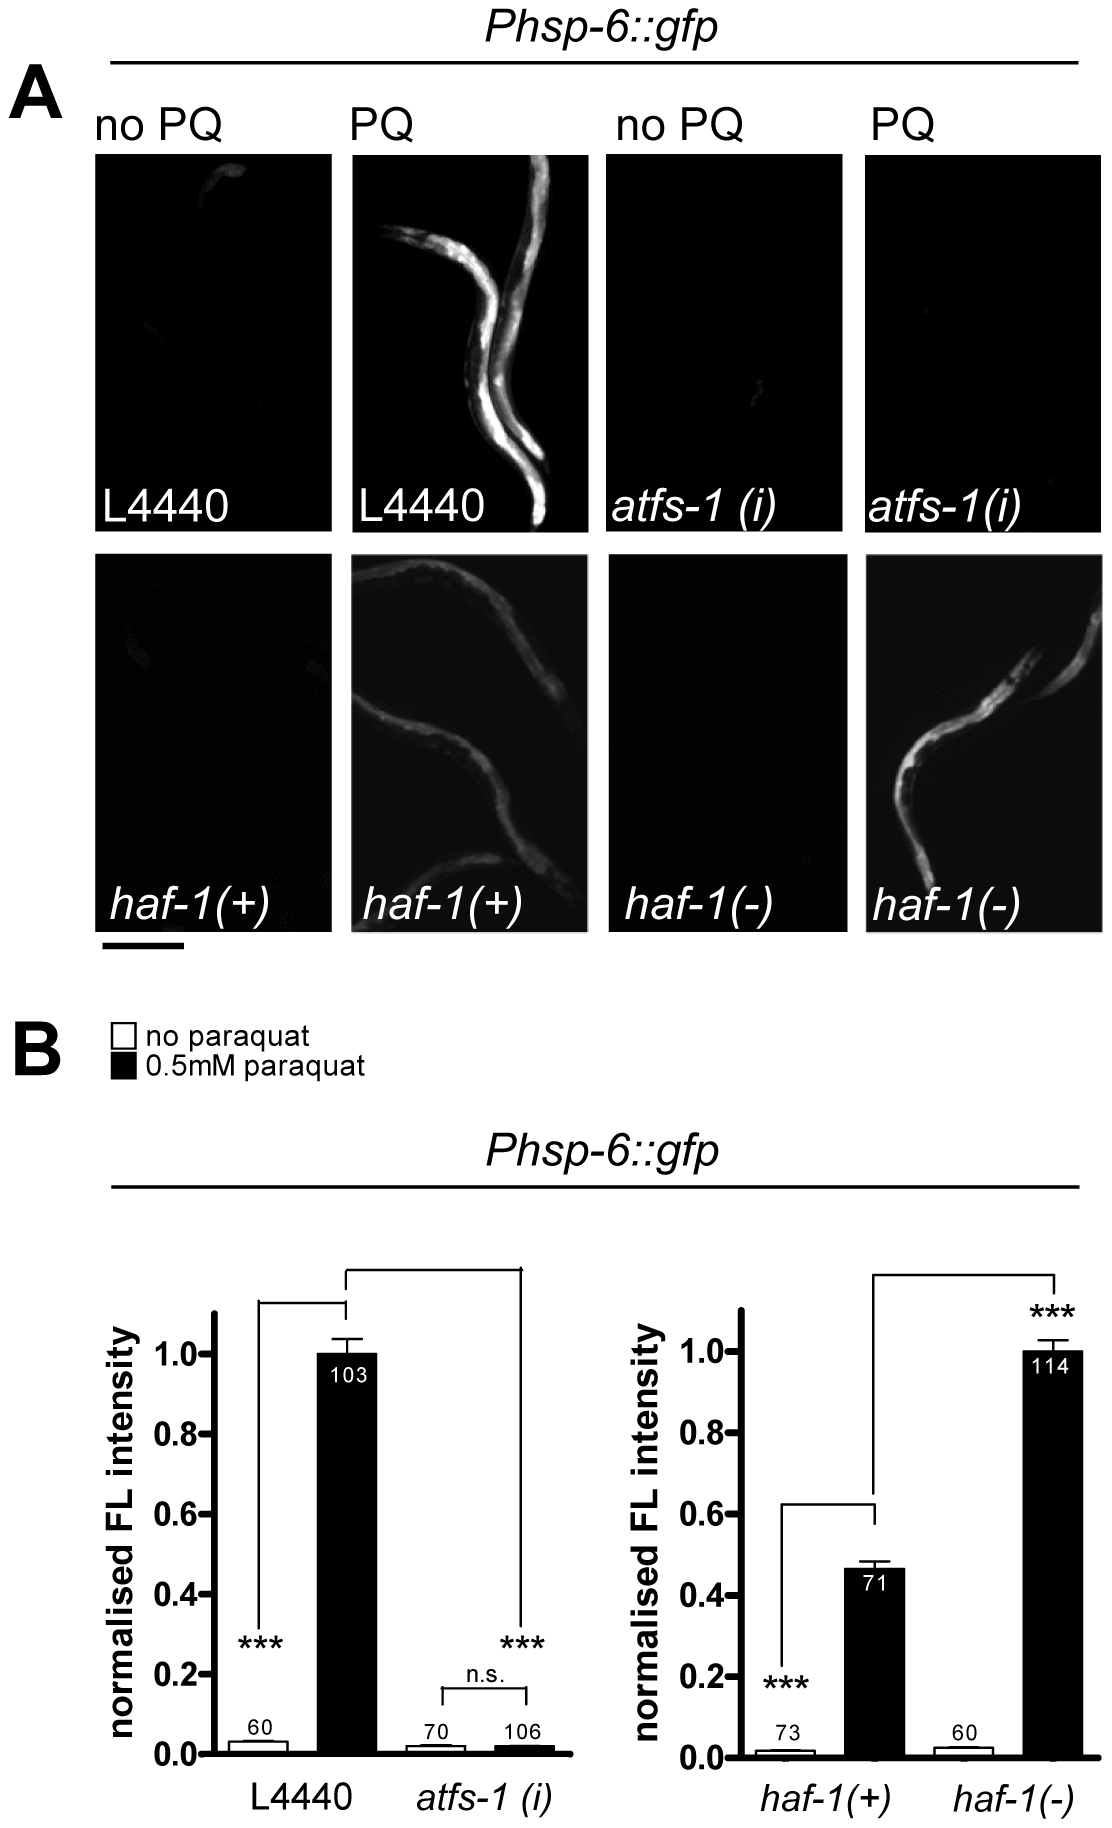 The induction of <i>hsp-6::gfp</i> by paraquat does not require HAF-1, but ATFS-1.